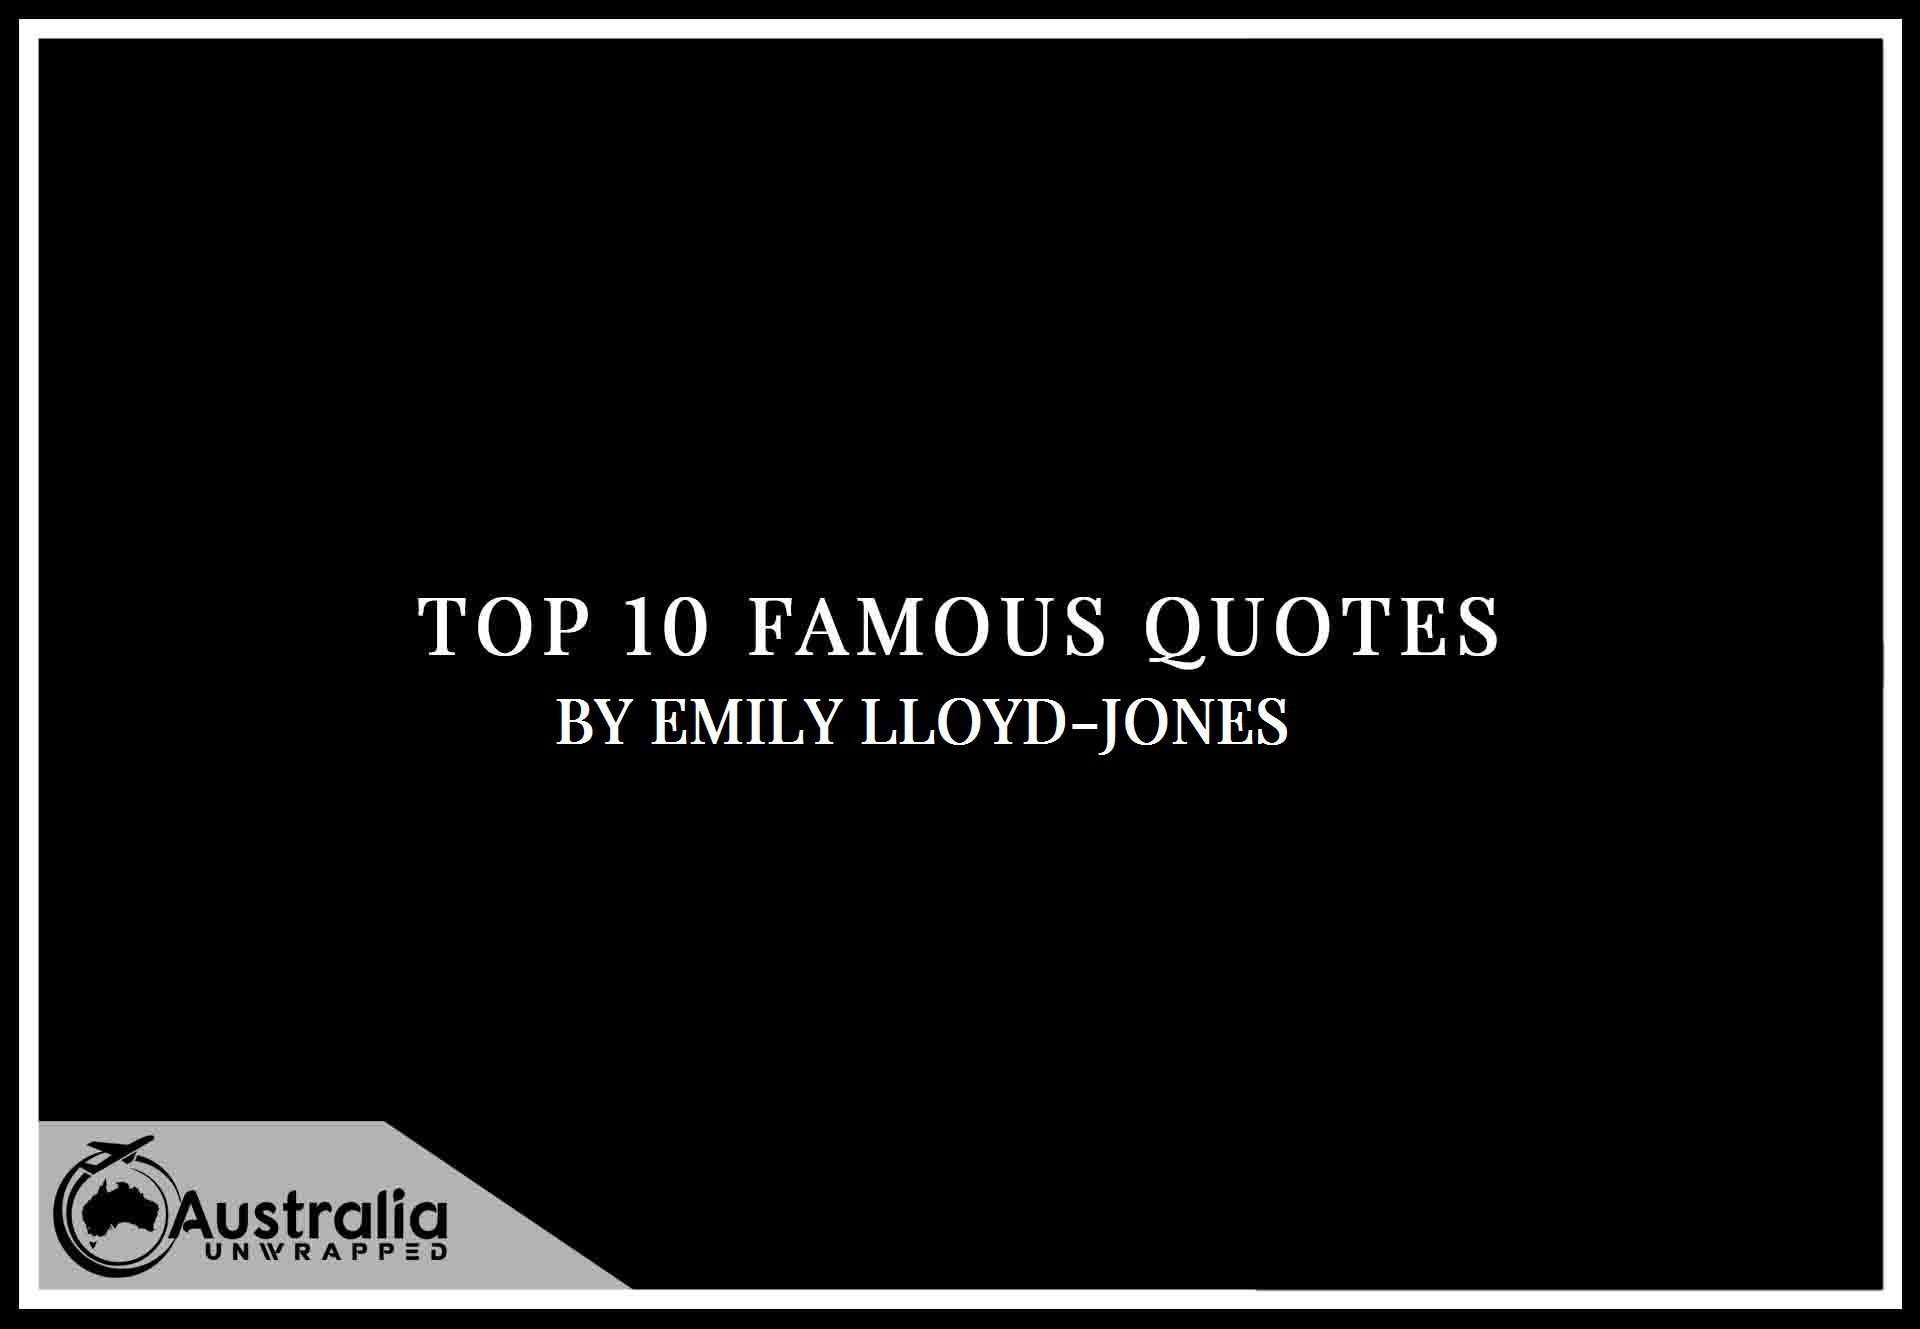 Emily Lloyd-Jones's Top 10 Popular and Famous Quotes